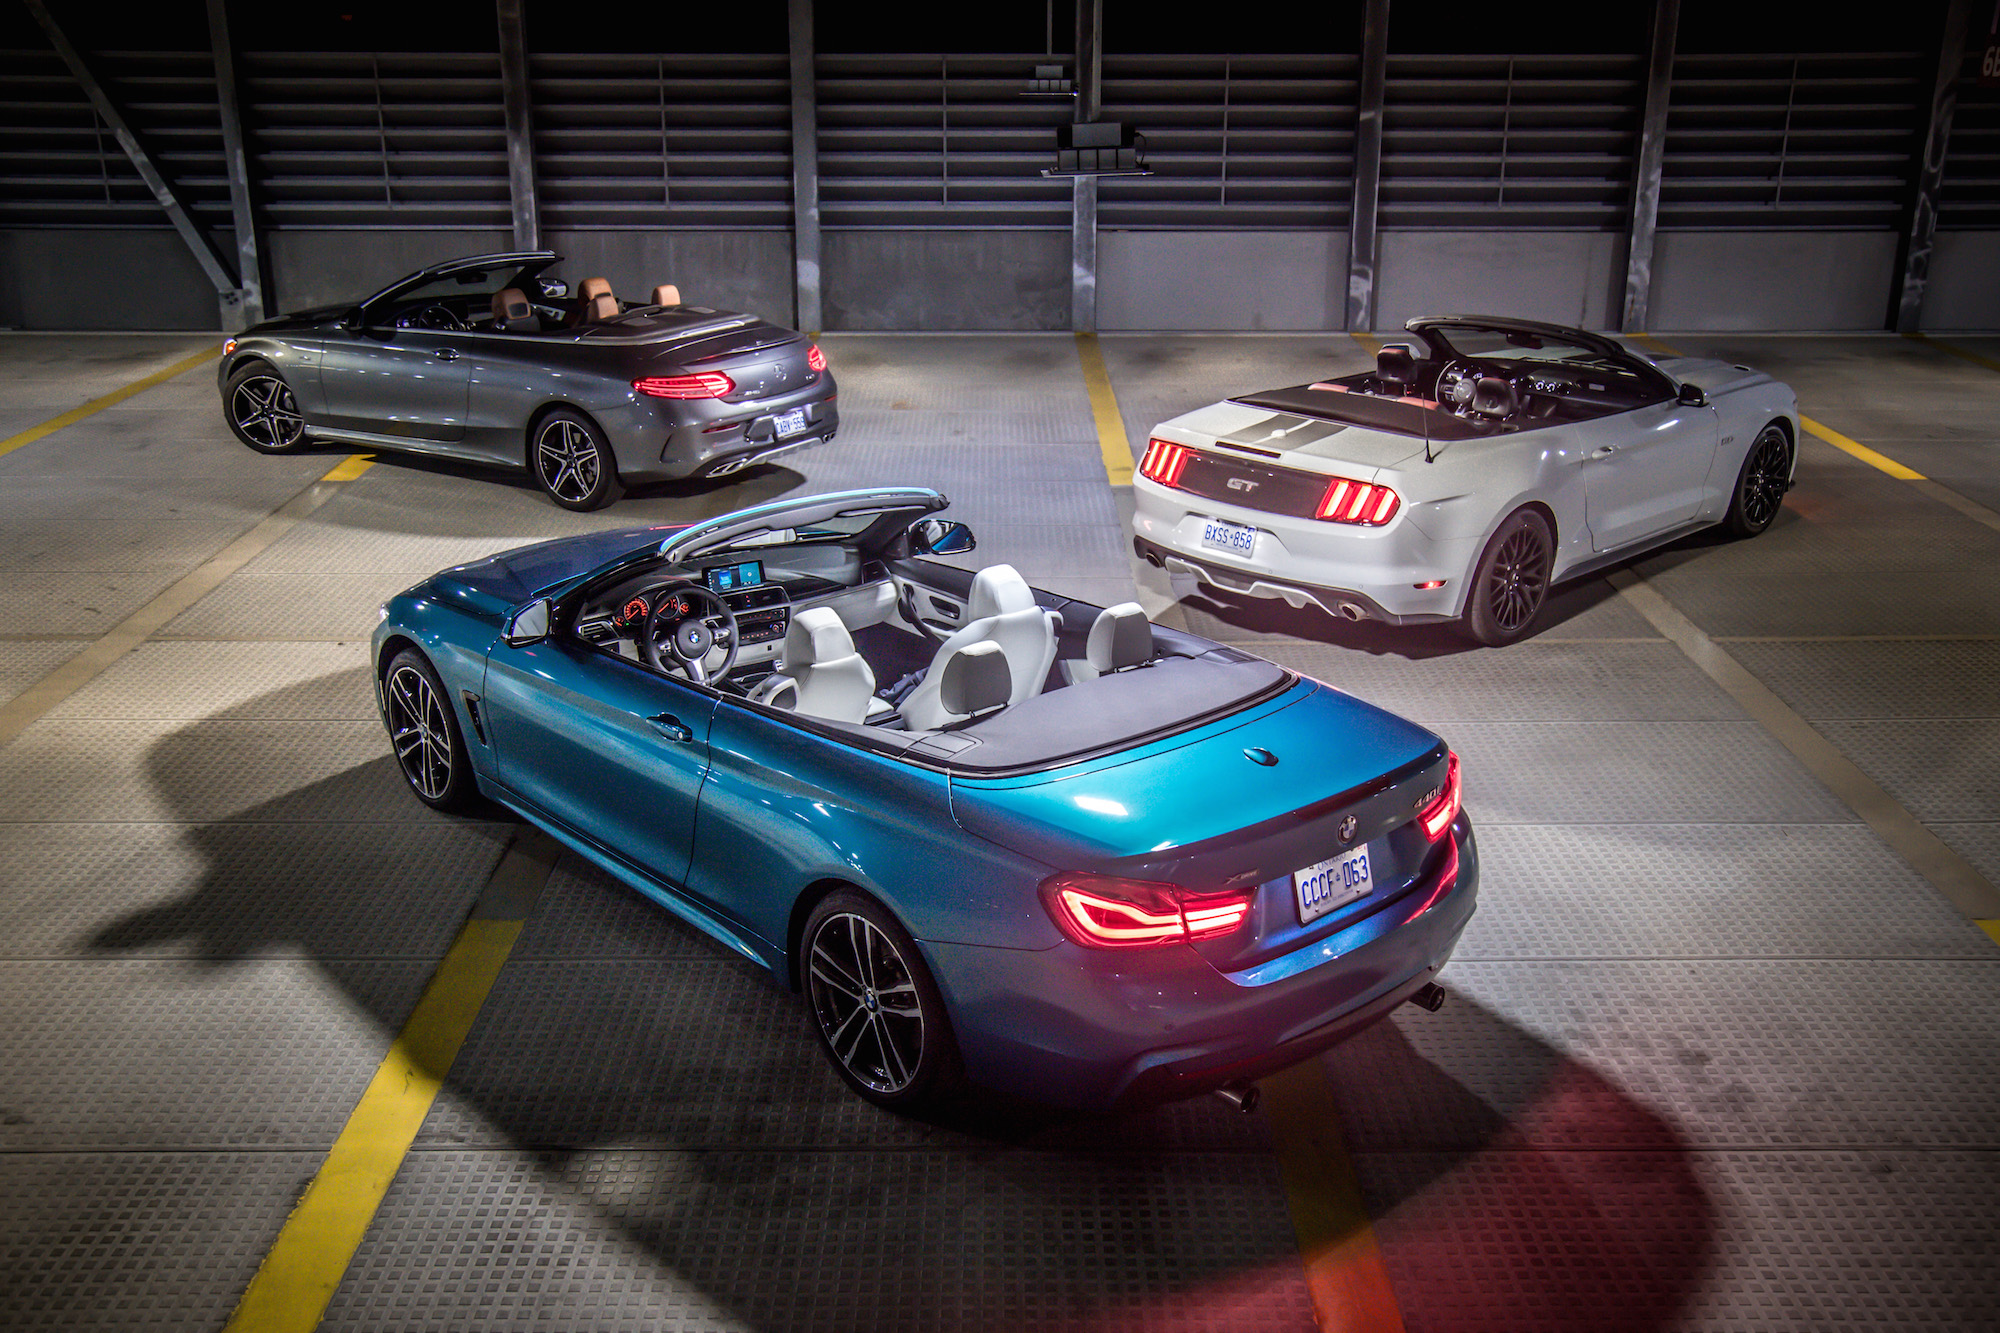 Mustang Gt Horsepower >> Convertible Comparison: BMW 440i xDrive vs. Mercedes-AMG C 43 4MATIC vs. Ford Mustang GT ...